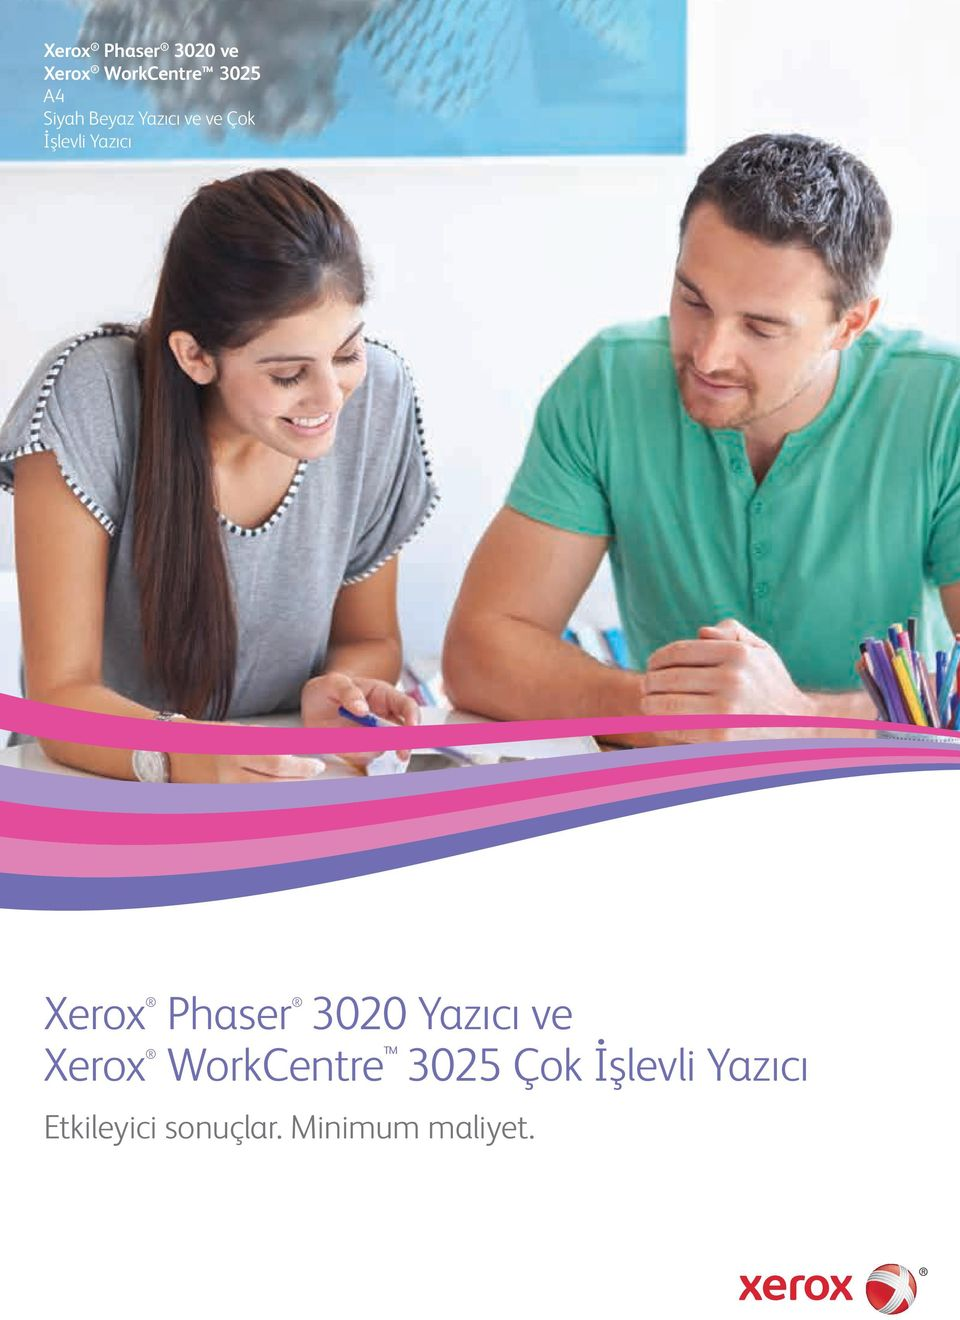 Xerox Phaser 3020 Yazıcı ve Xerox WorkCentre